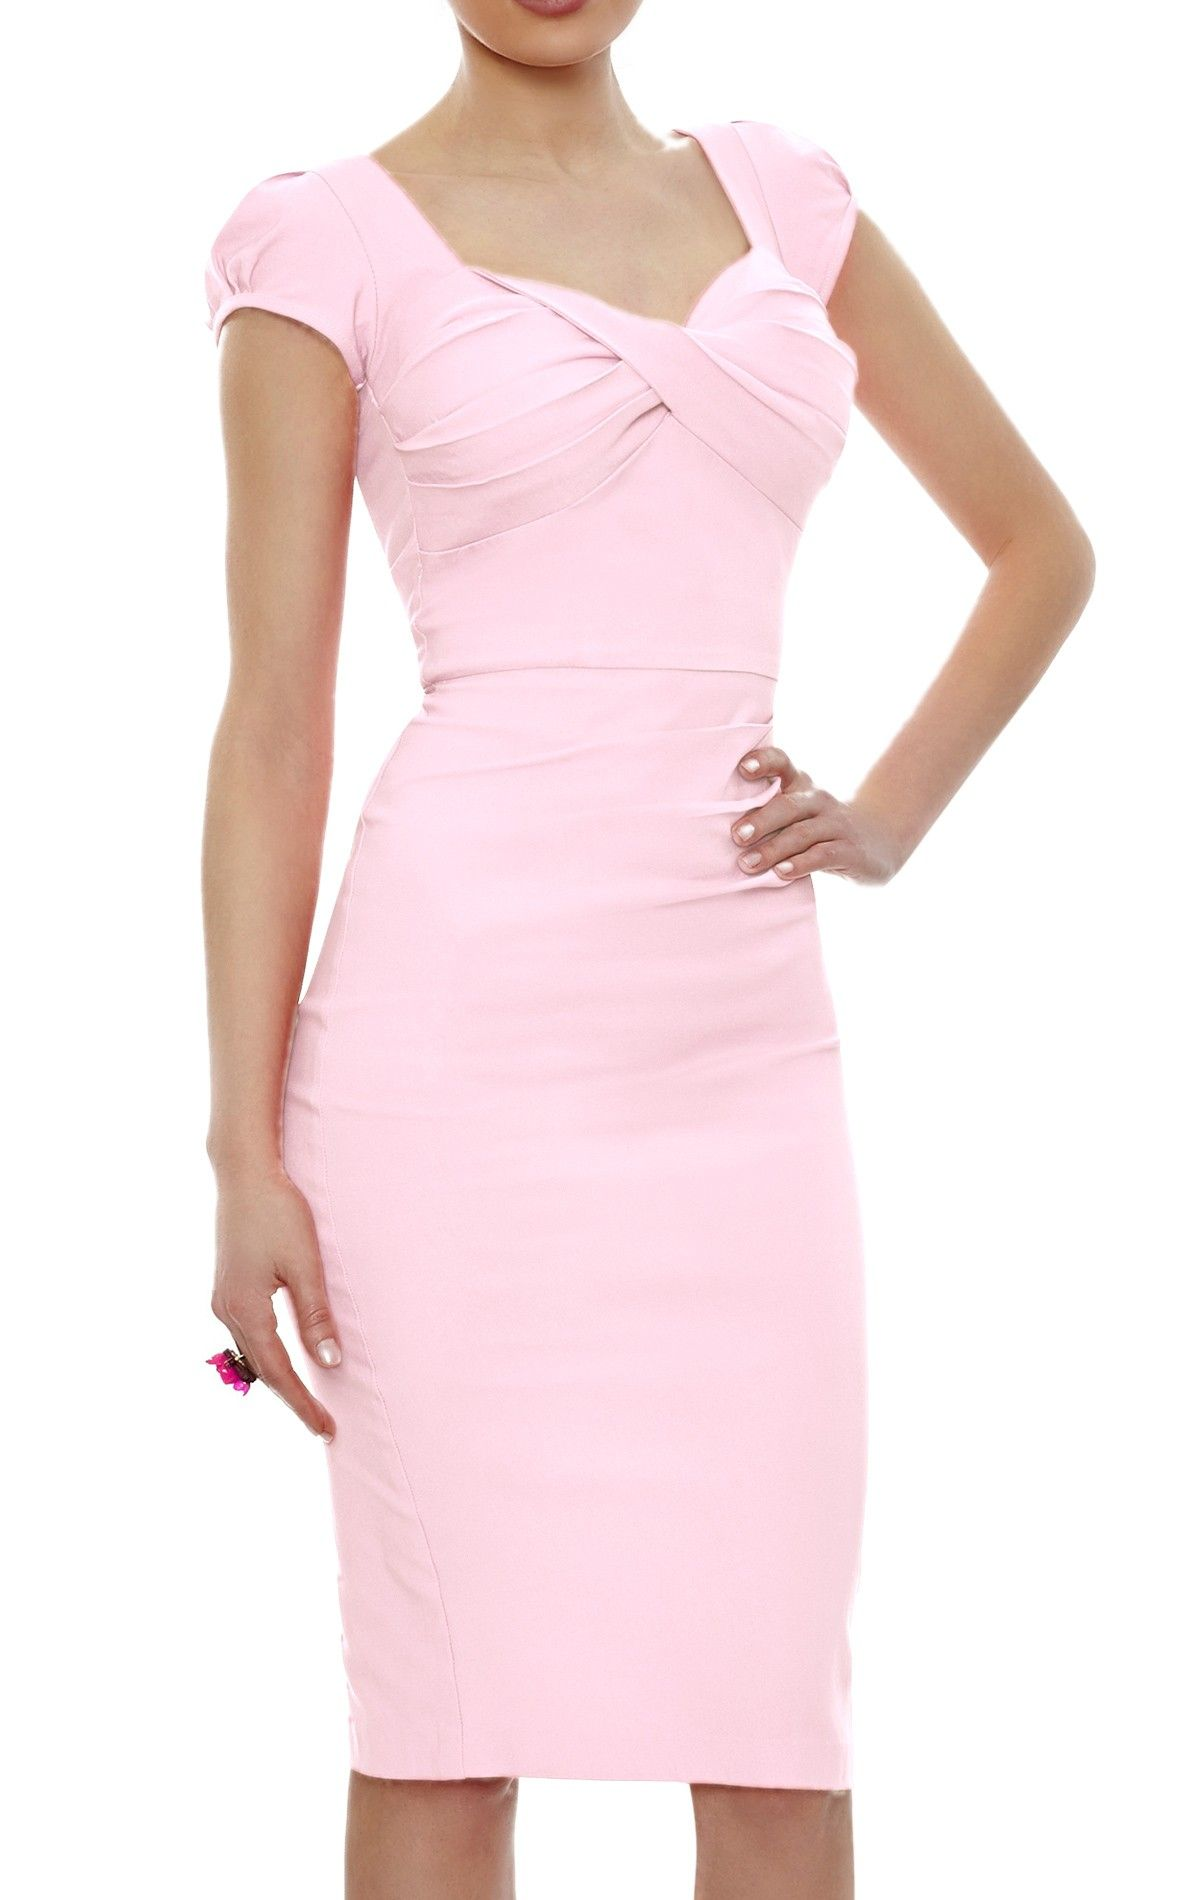 The pink Nigella Dress draws on the vintage charm and feminine ...